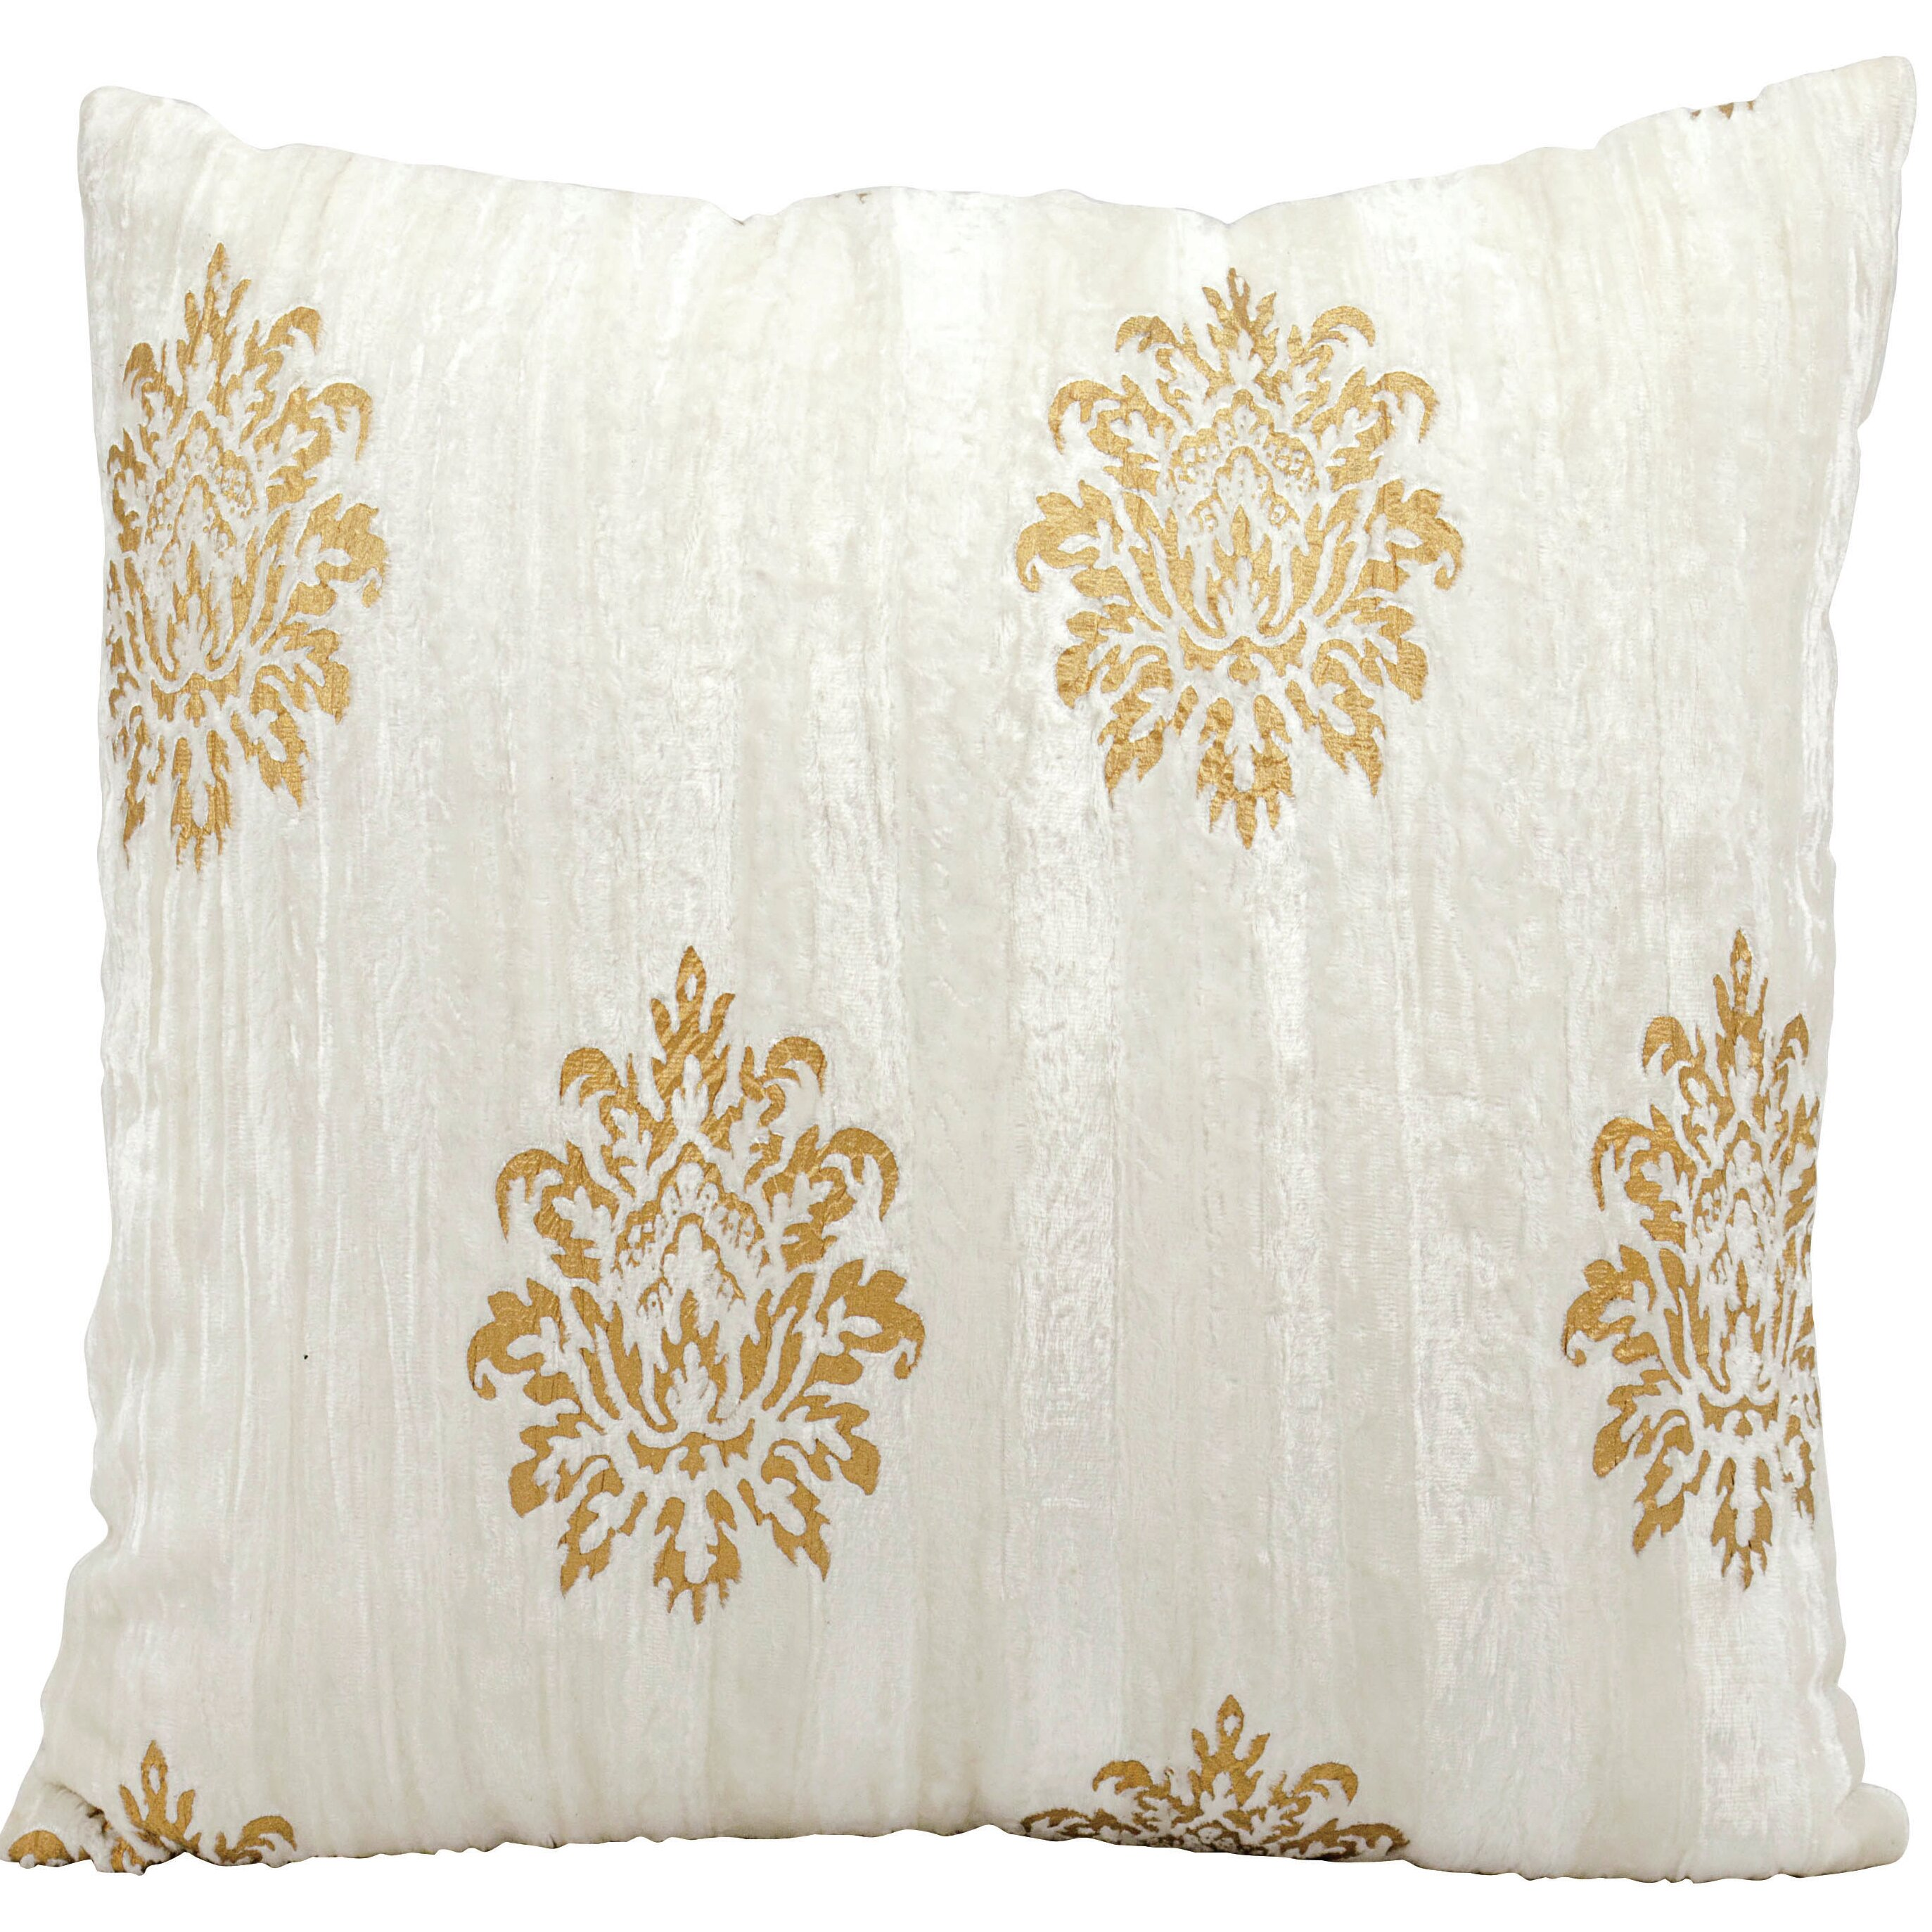 Michael Amini Gold Damask Velvet Throw Pillow Wayfair